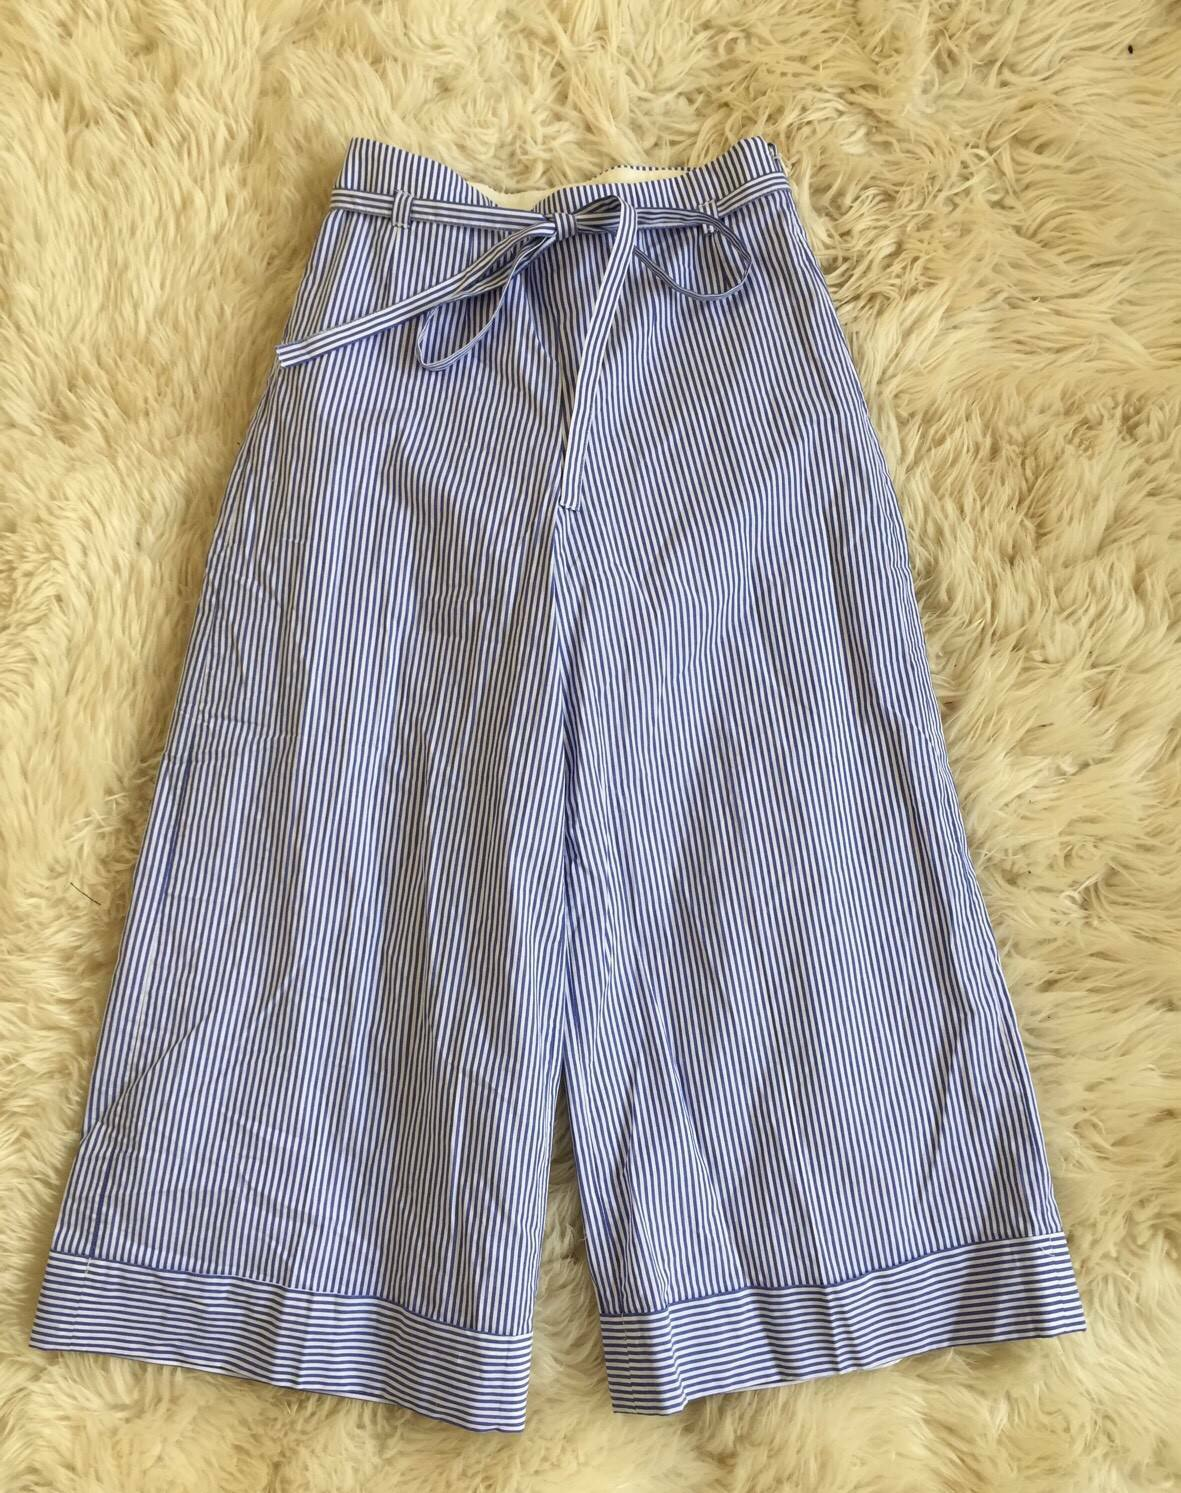 98 J. CREW CUFFED CROPPED PANTS blueE WHITE SHIRTING STRIPE G3174 Sz 00 NEW